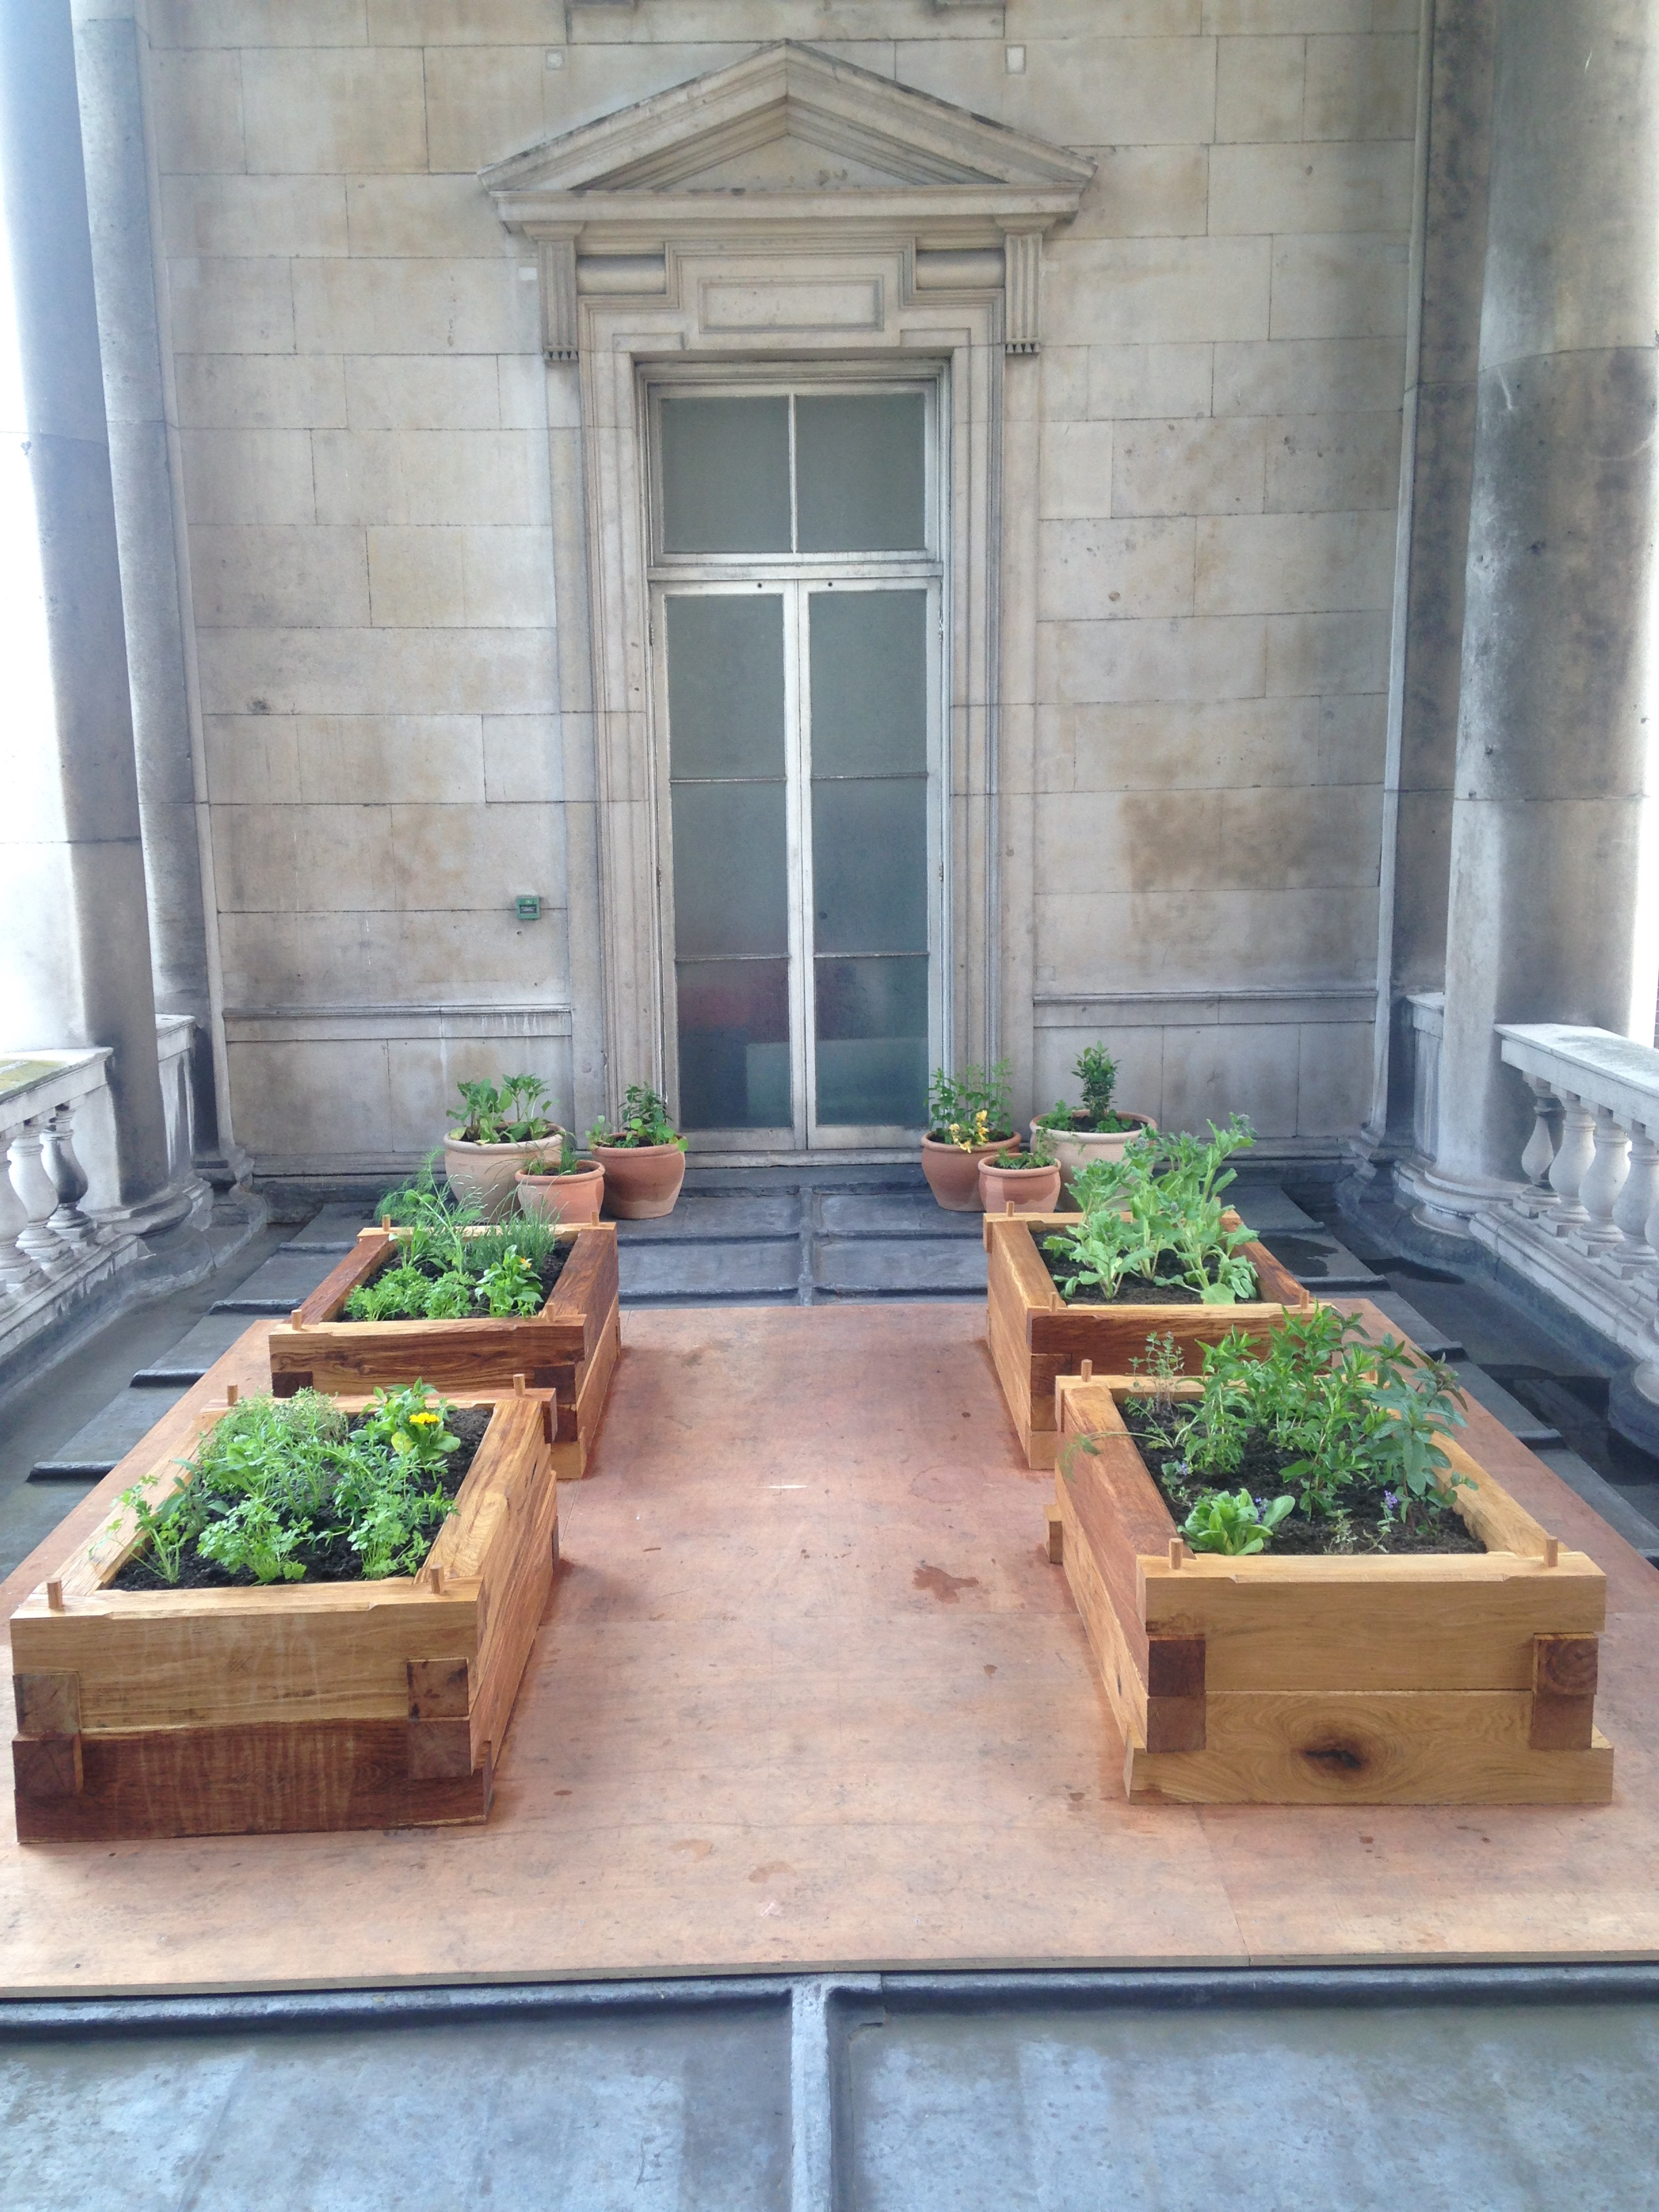 Small,experimental,bee friendly herb garden for Tom's Kitchen on one of the balconies.